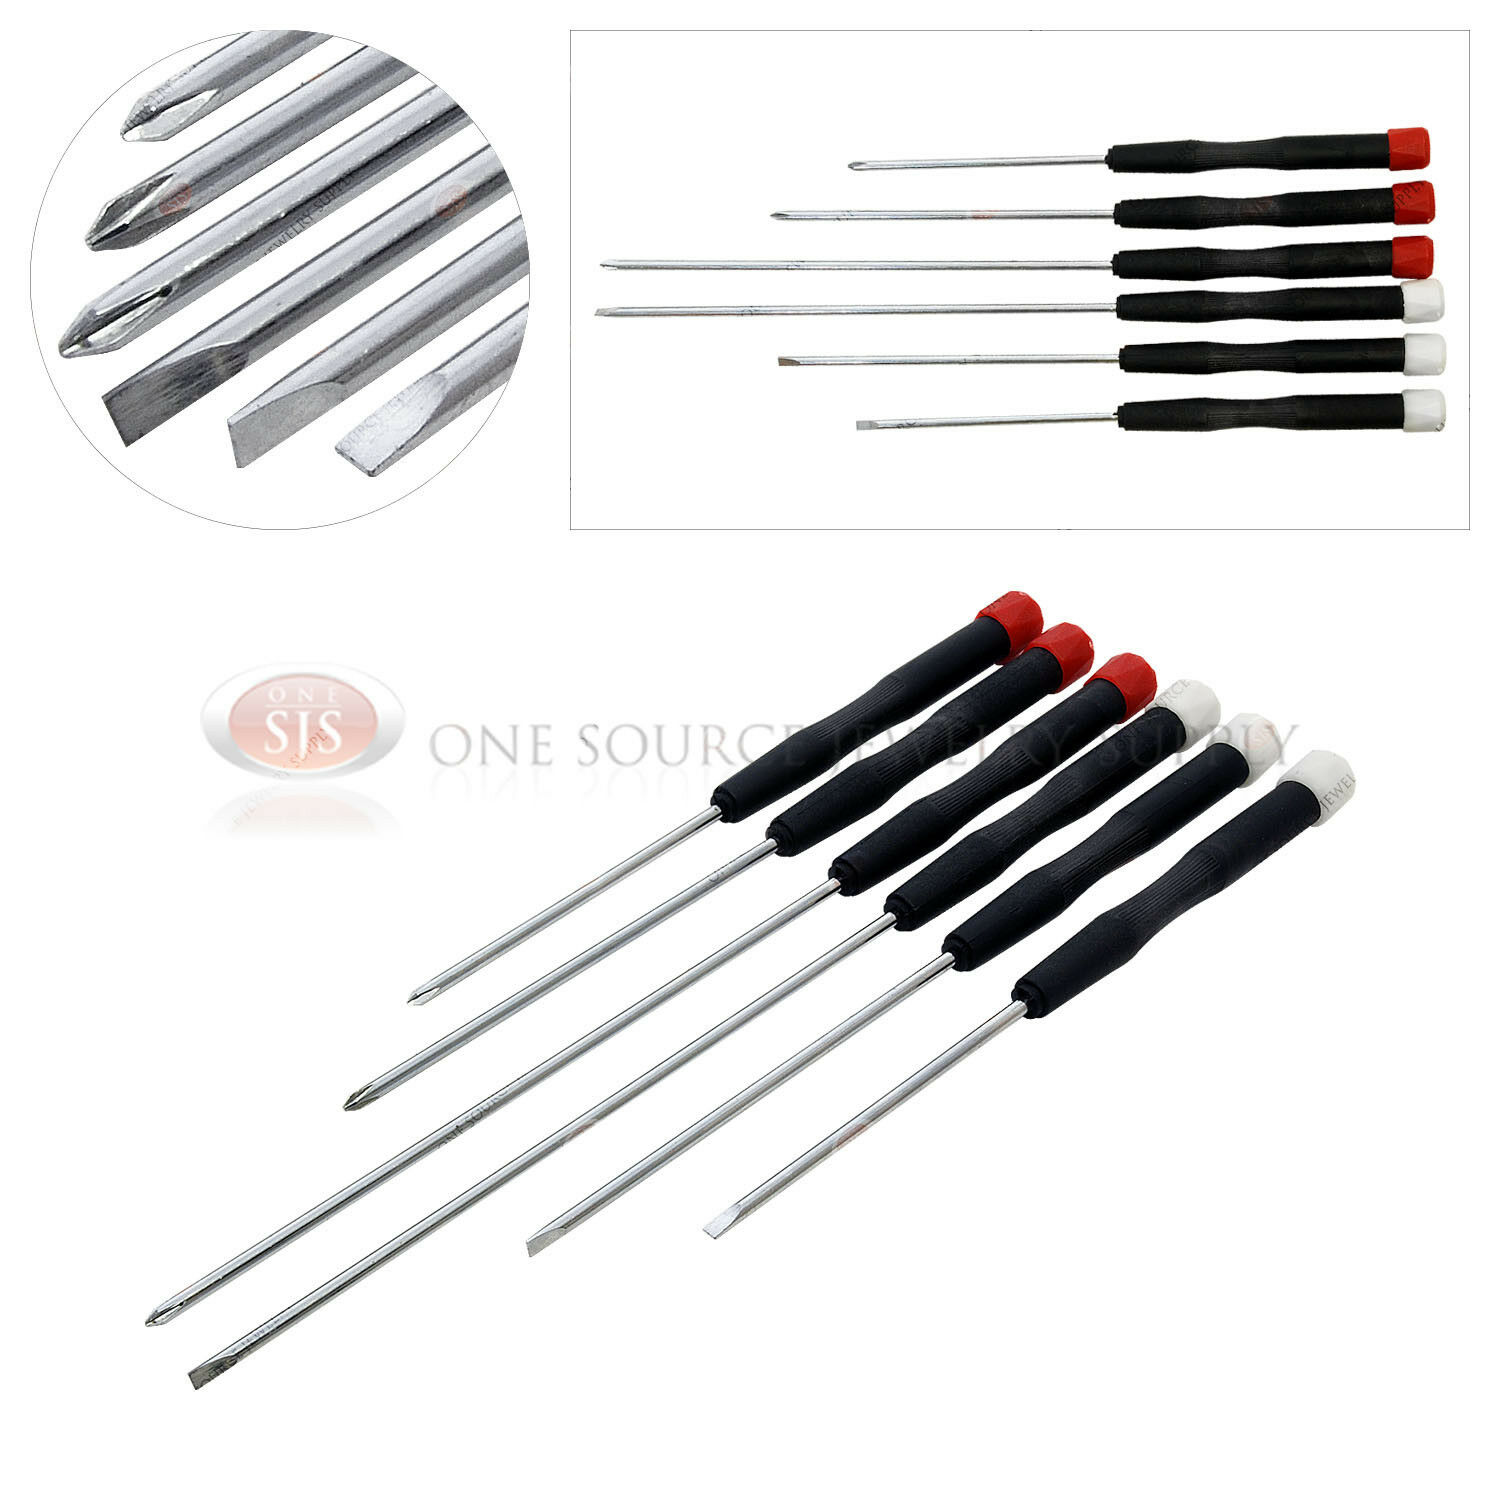 electronic screwdriver 6 piece set phillips slotted computer repair hobby work ebay. Black Bedroom Furniture Sets. Home Design Ideas